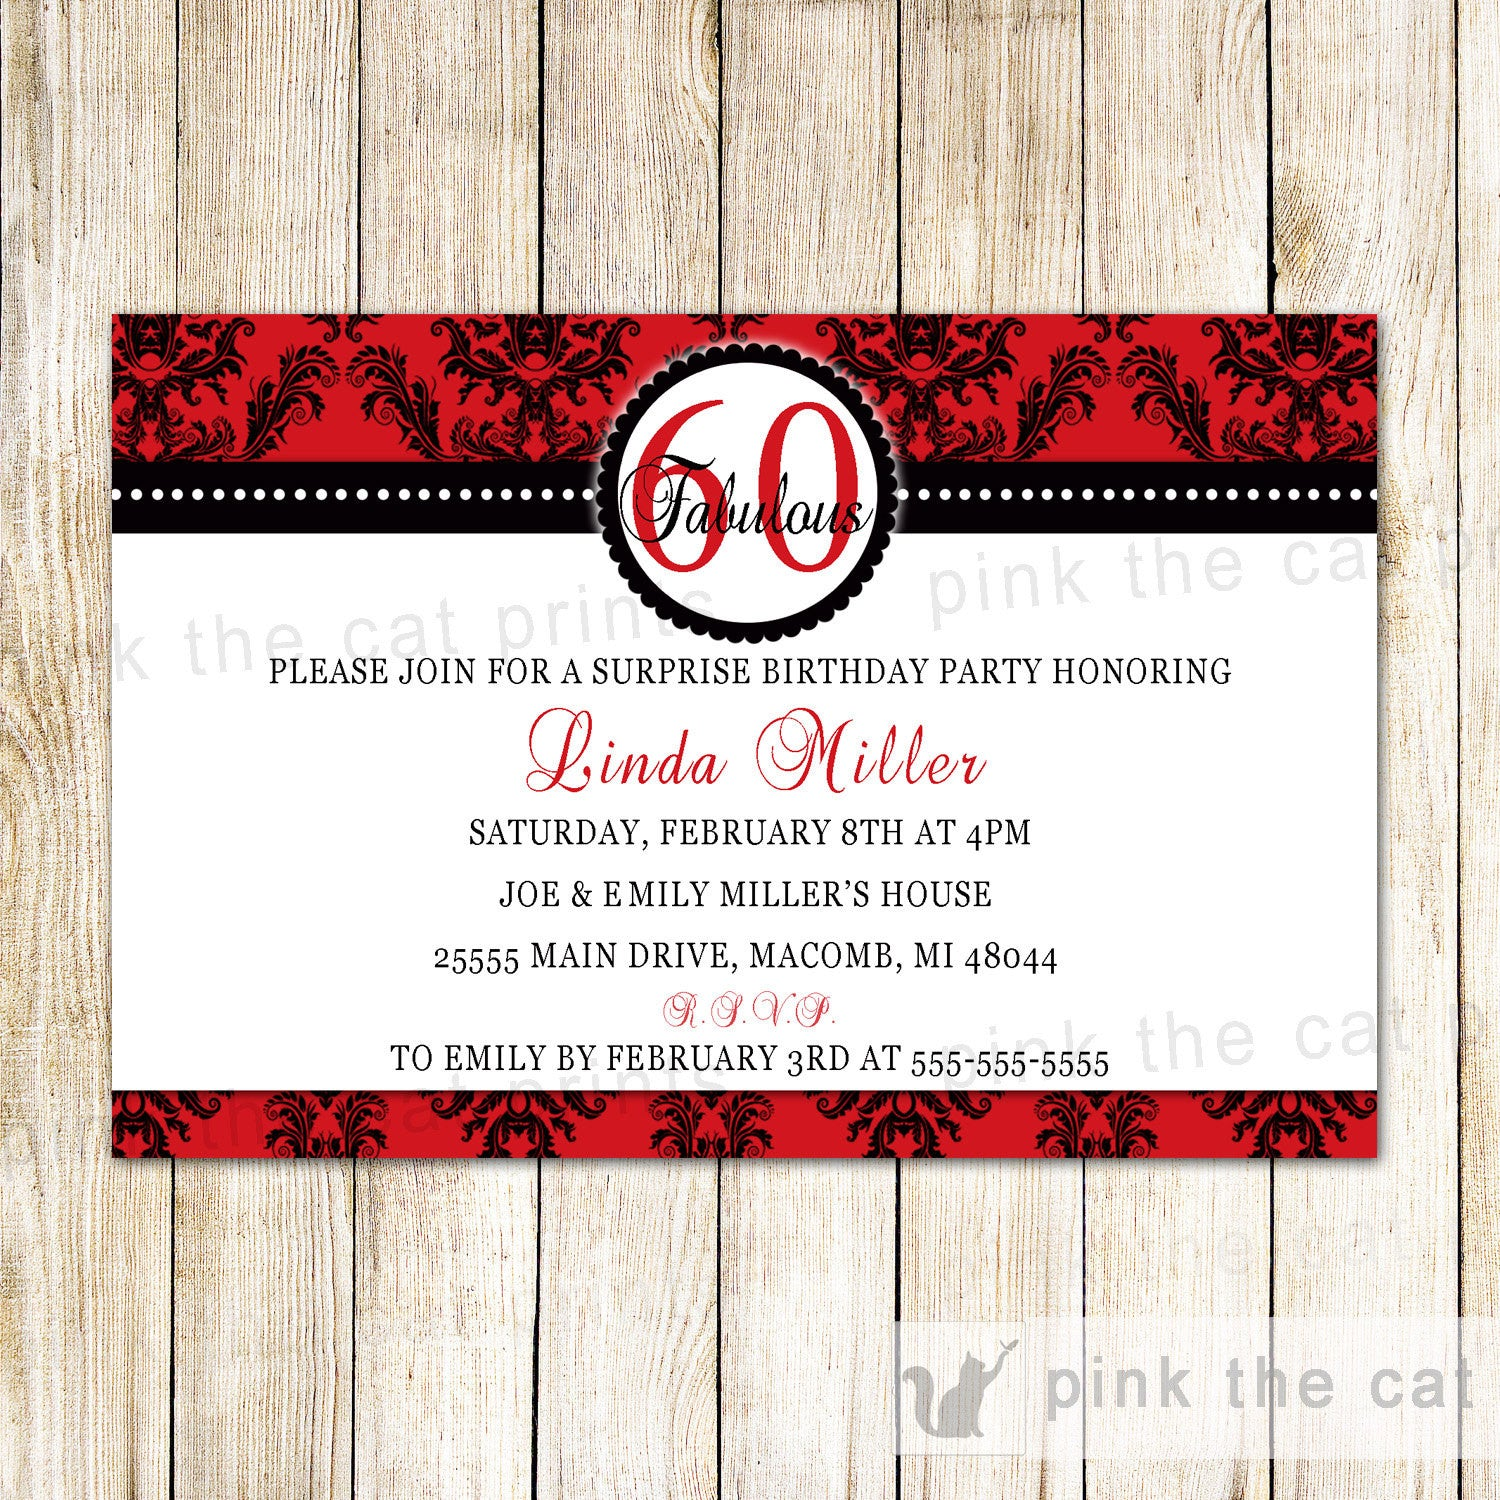 Red and Black Invitation Adult Surprise Birthday Party Red Black ...